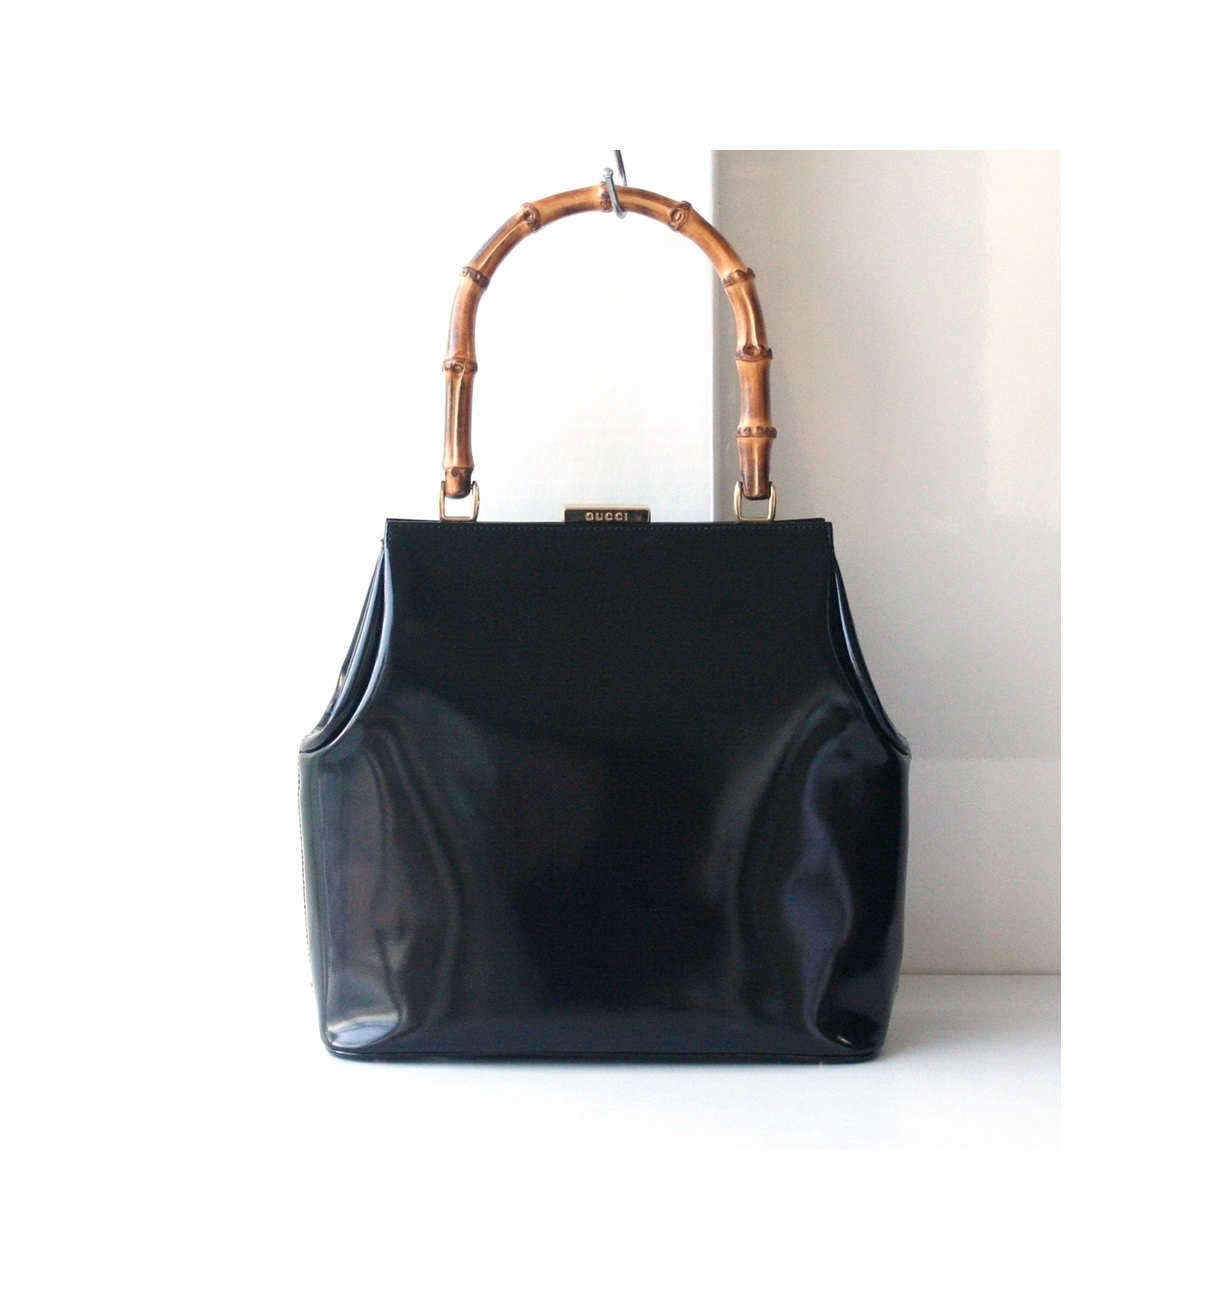 cede29c040c Gucci Bamboo Black Patent Leather Tote handbag Rare Vintage authentic bag  by hfvin on Etsy  gucci  bamboo  patent  black  totes  handbag  hfvin